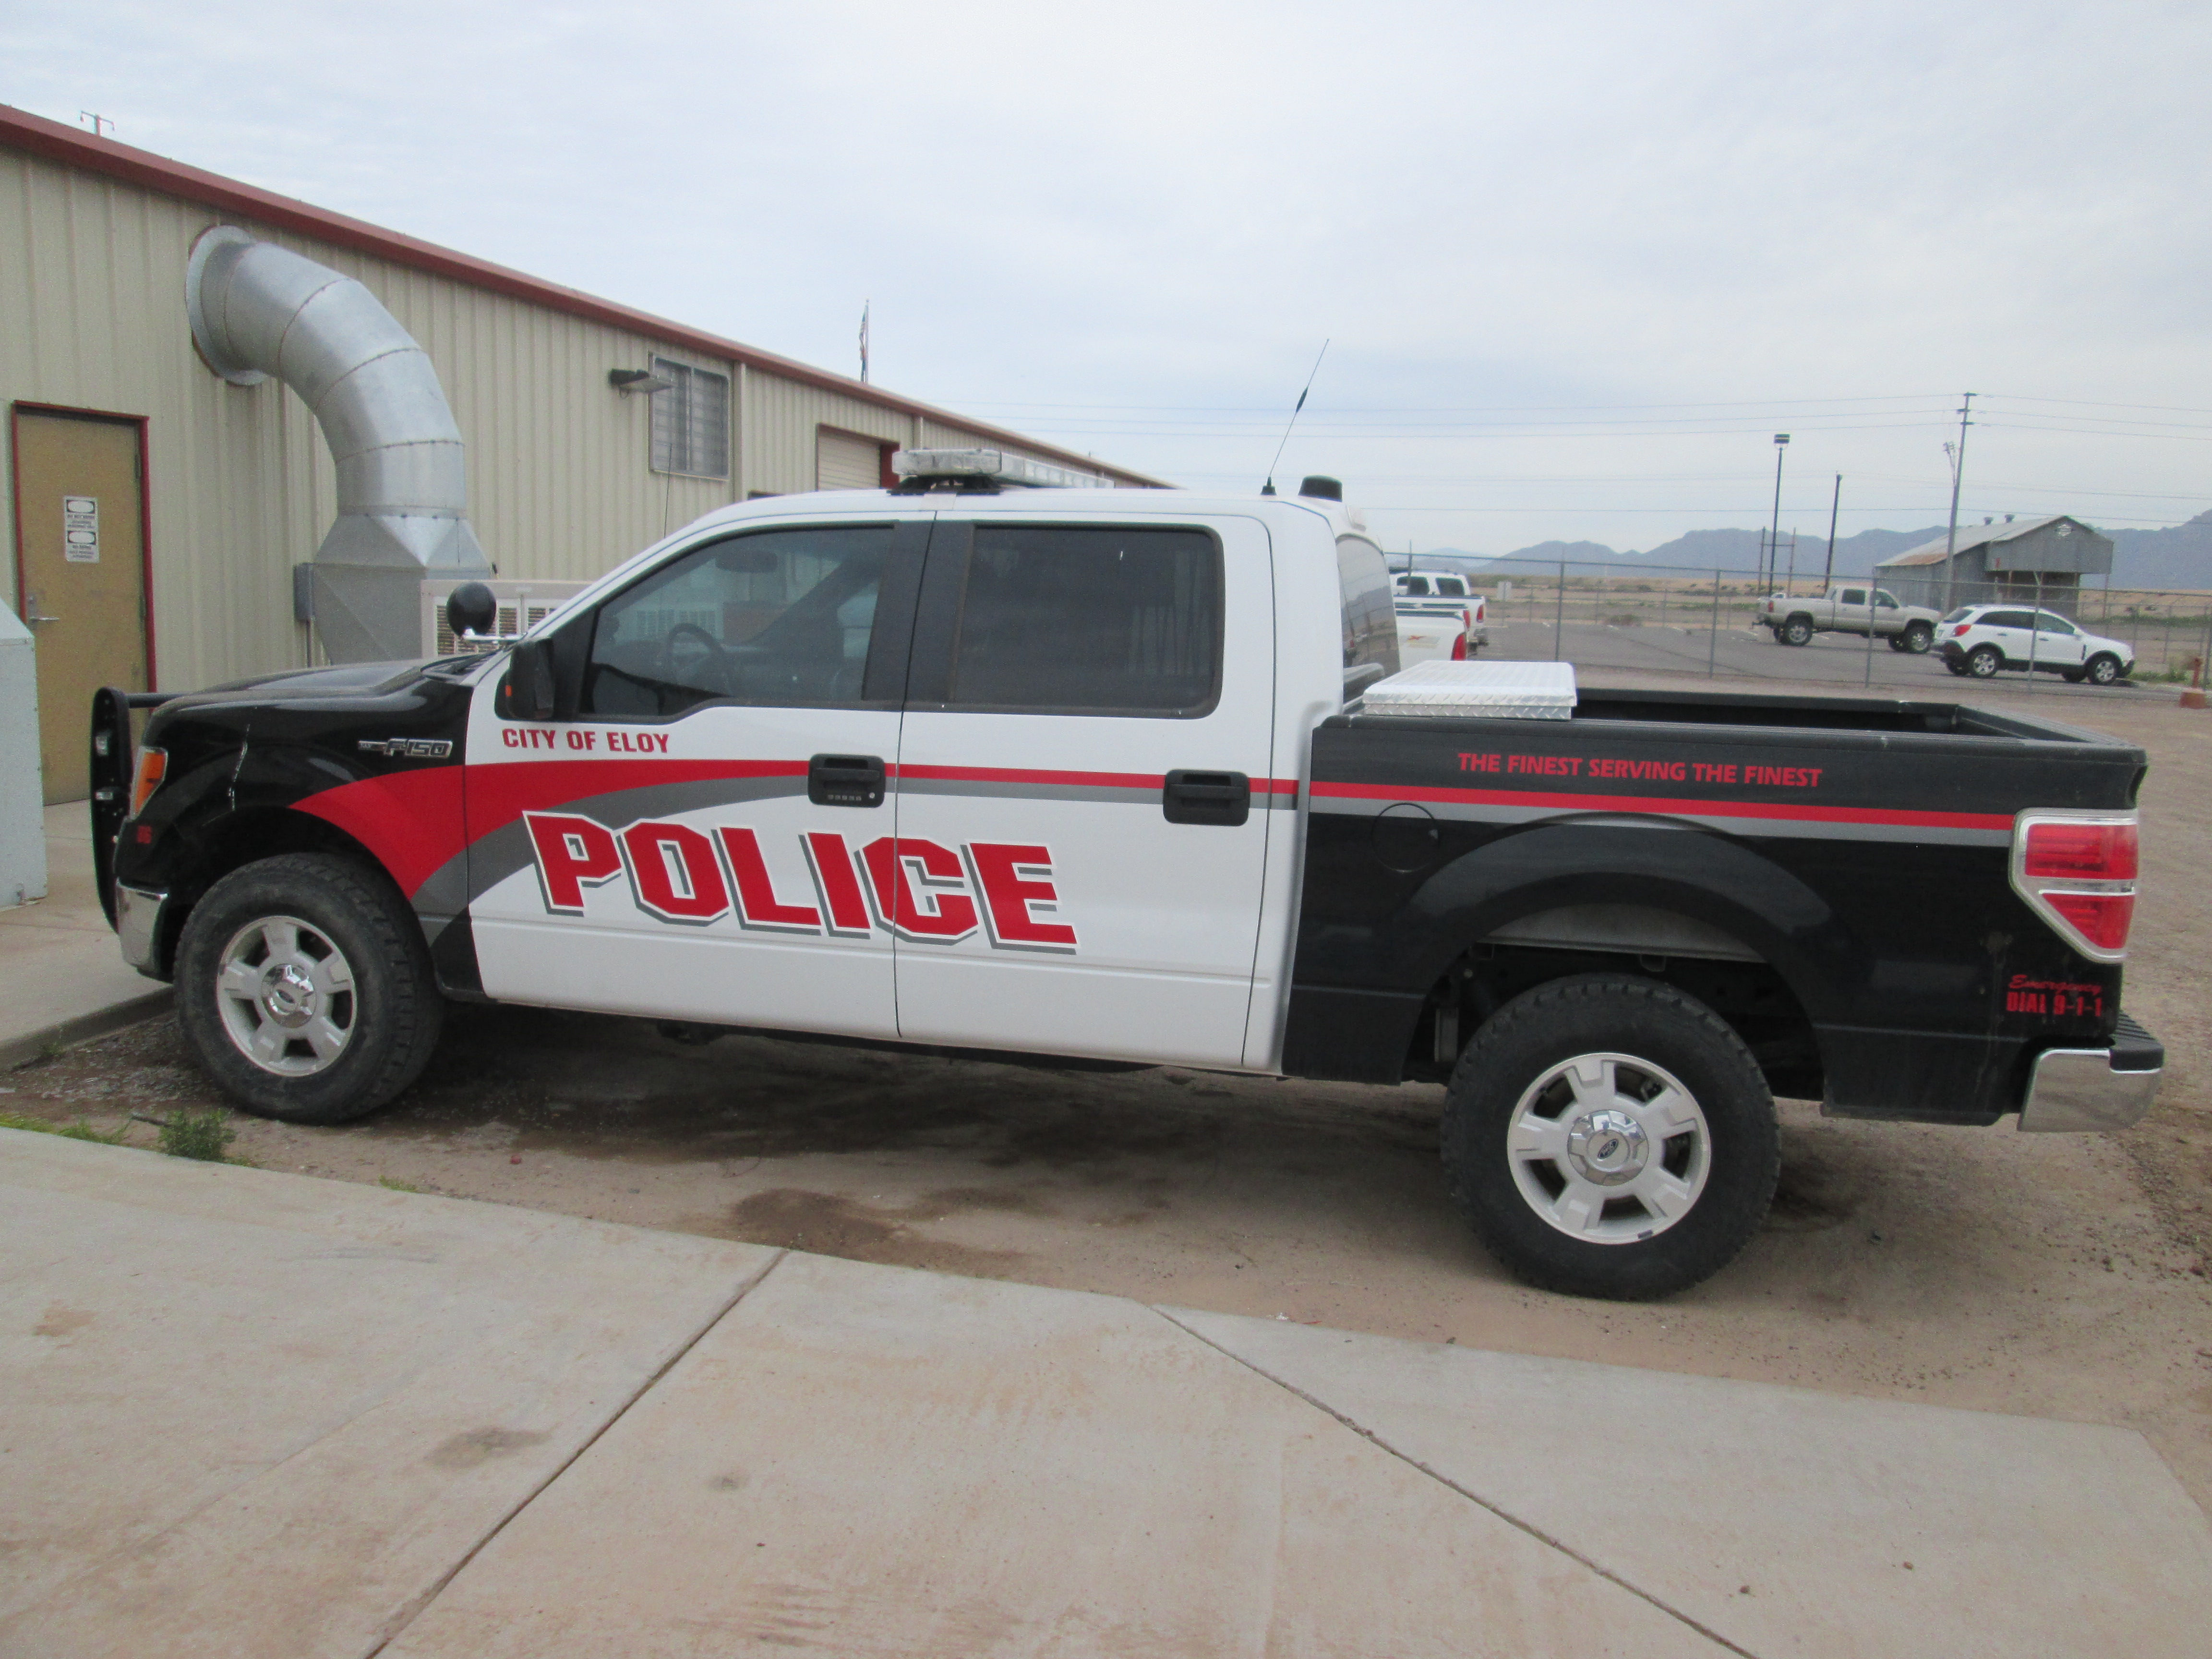 PD truck at City shop 2